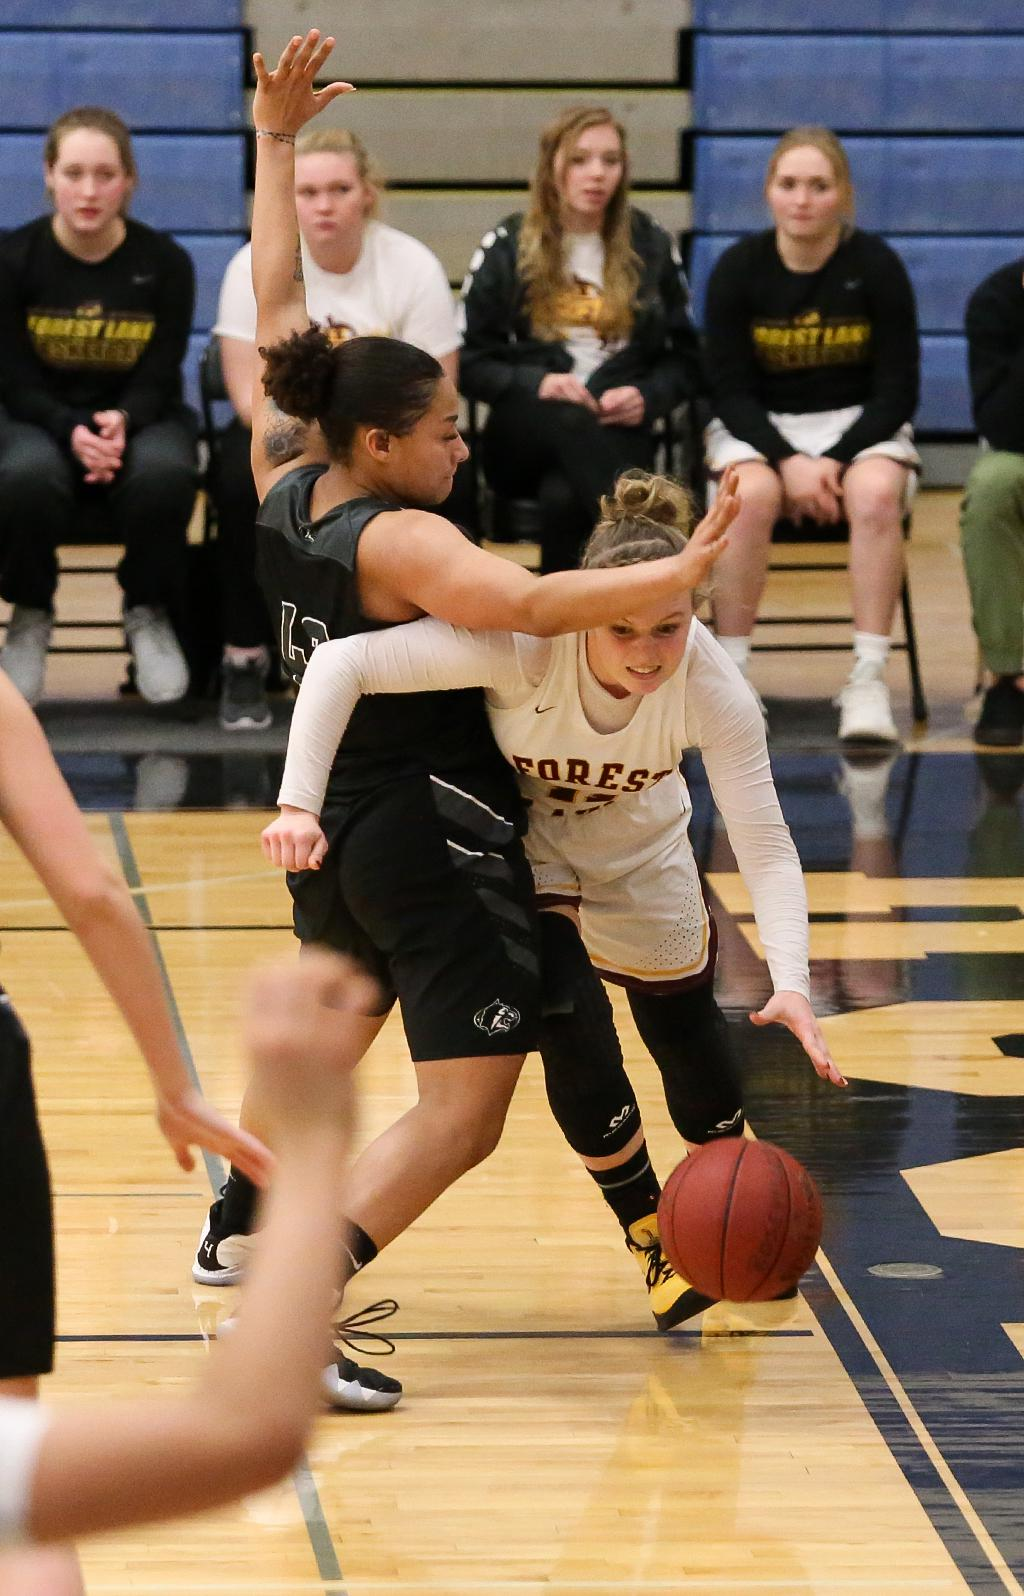 Lexie Hultman (11) forces her way past Jada Hood along the baseline. Hultman led the Rangers' scoring with 10 points in a 52-47 loss at Roseville High School. Photo by Cheryl Myers, SportsEngine